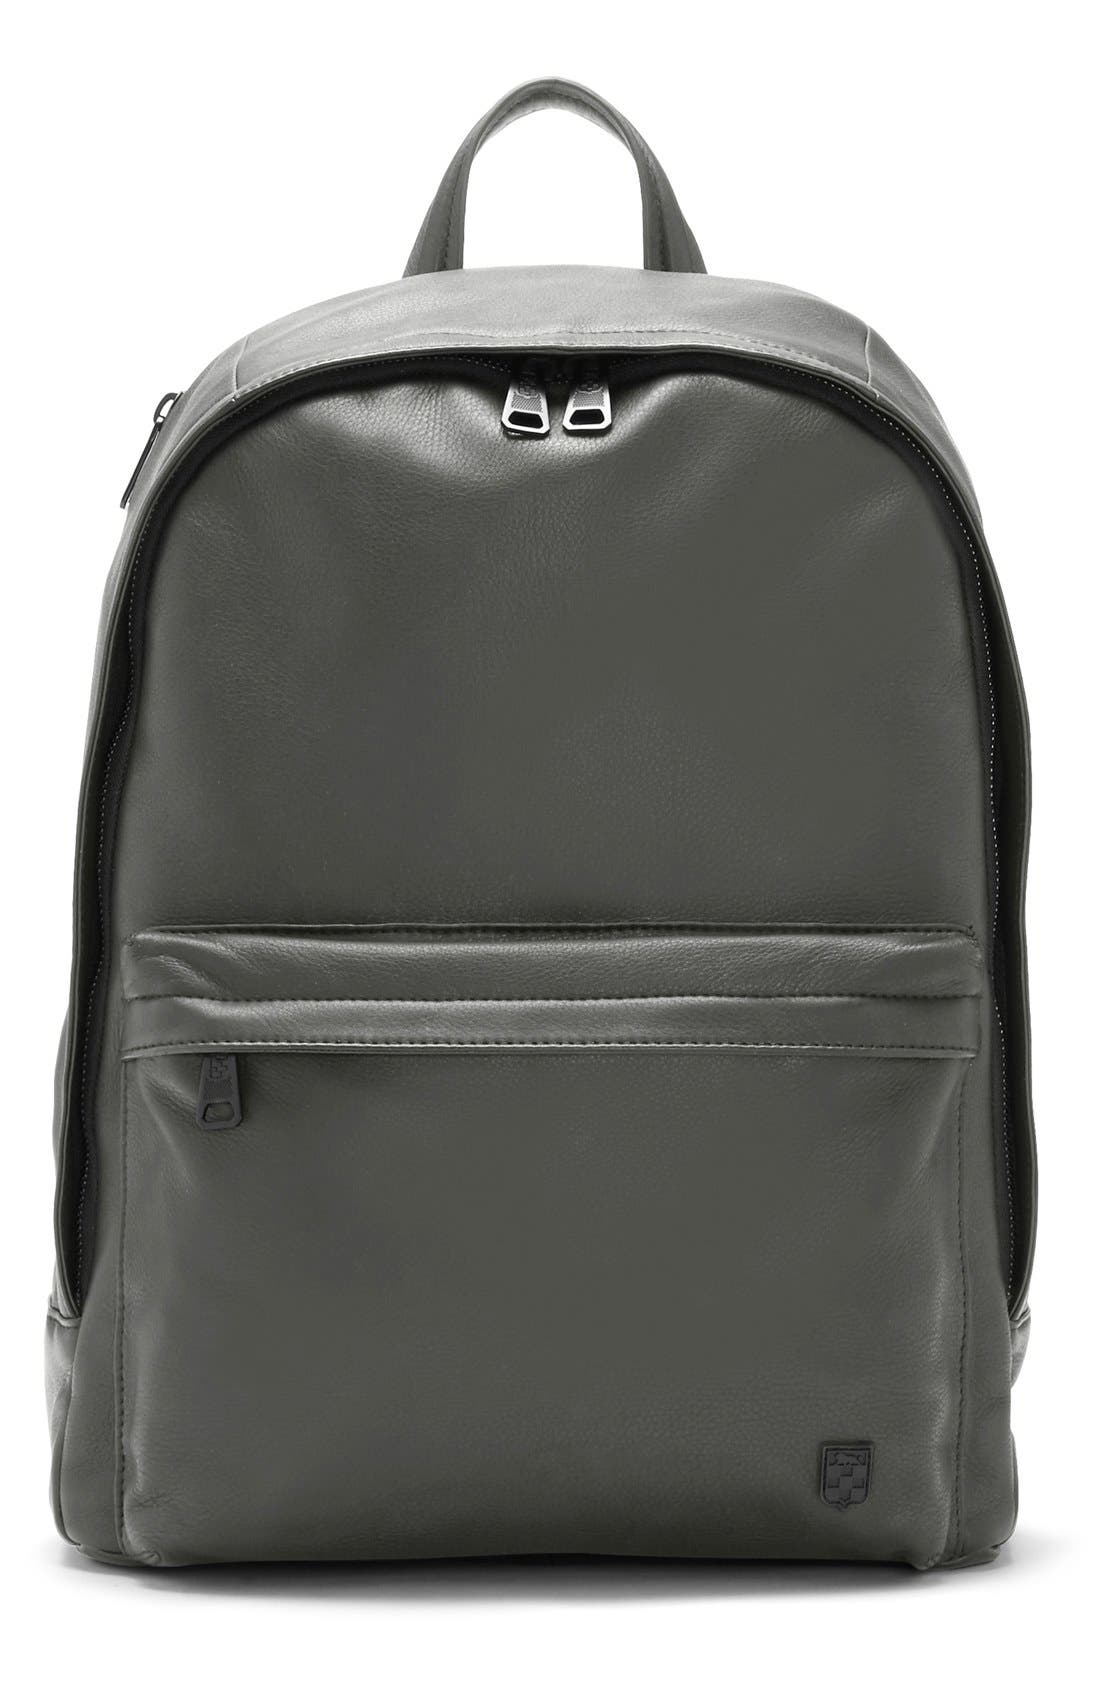 'Tolve' Leather Backpack,                             Main thumbnail 1, color,                             021